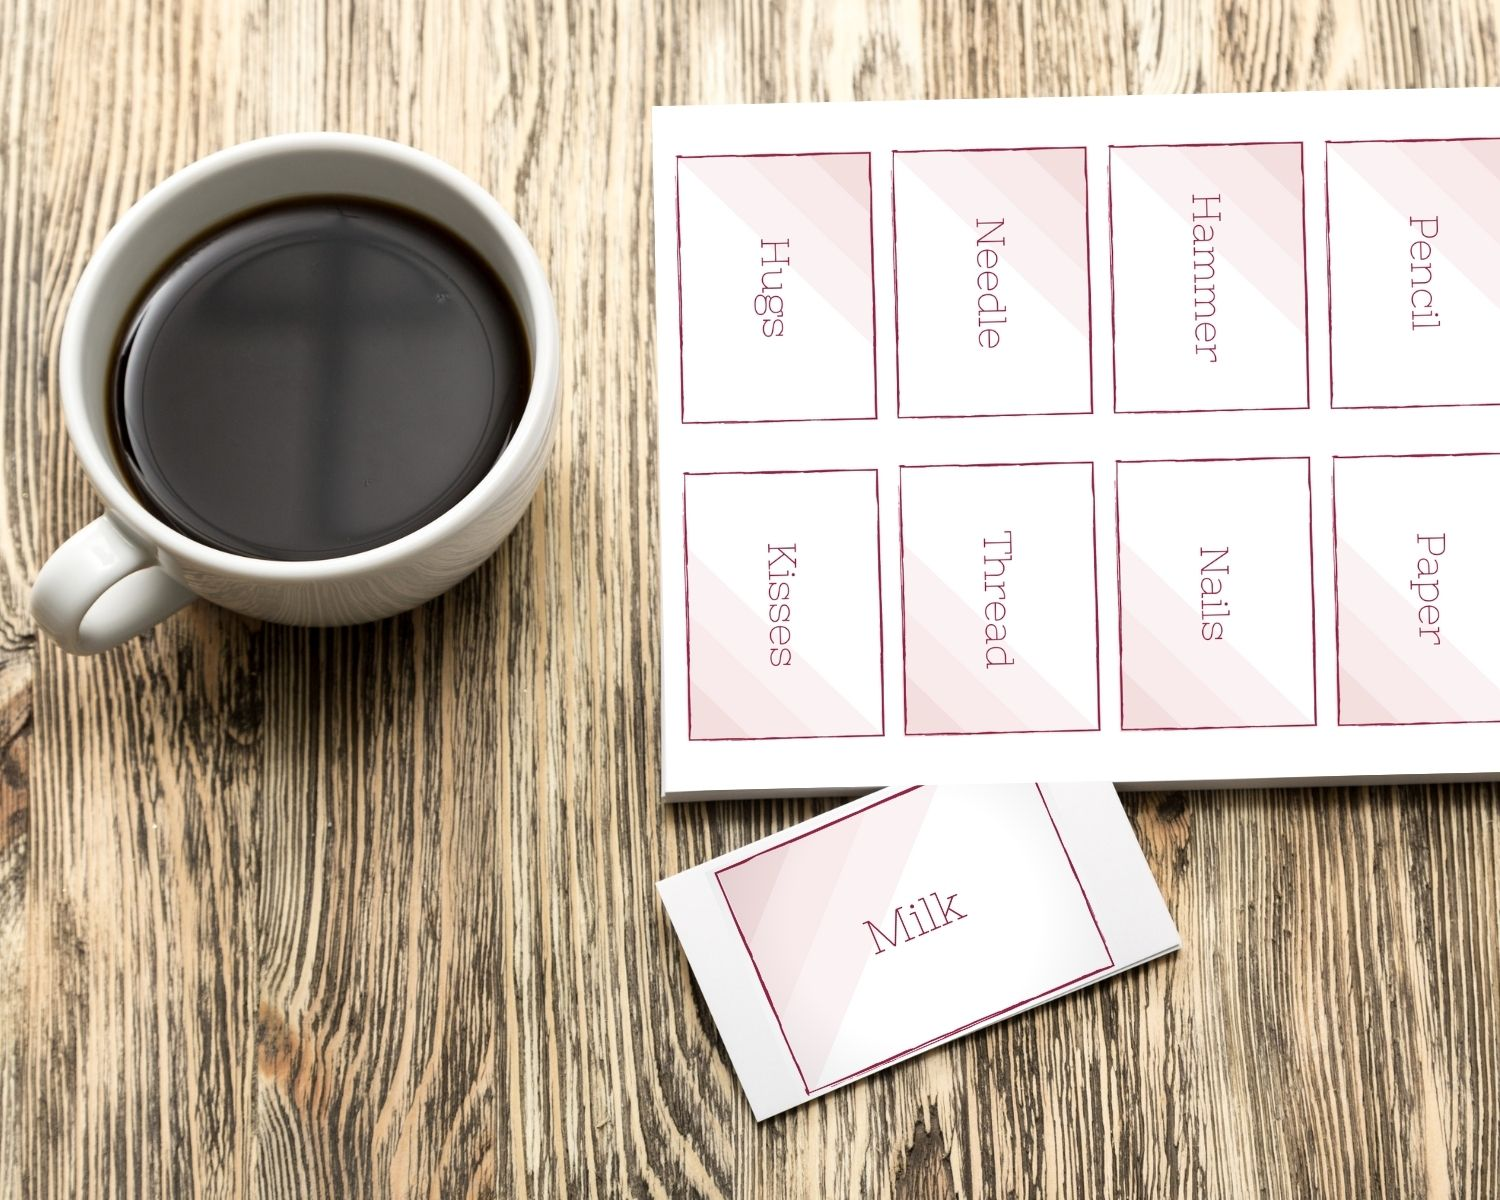 A sheet of find your pair cards sits next to a mug of coffee on a table